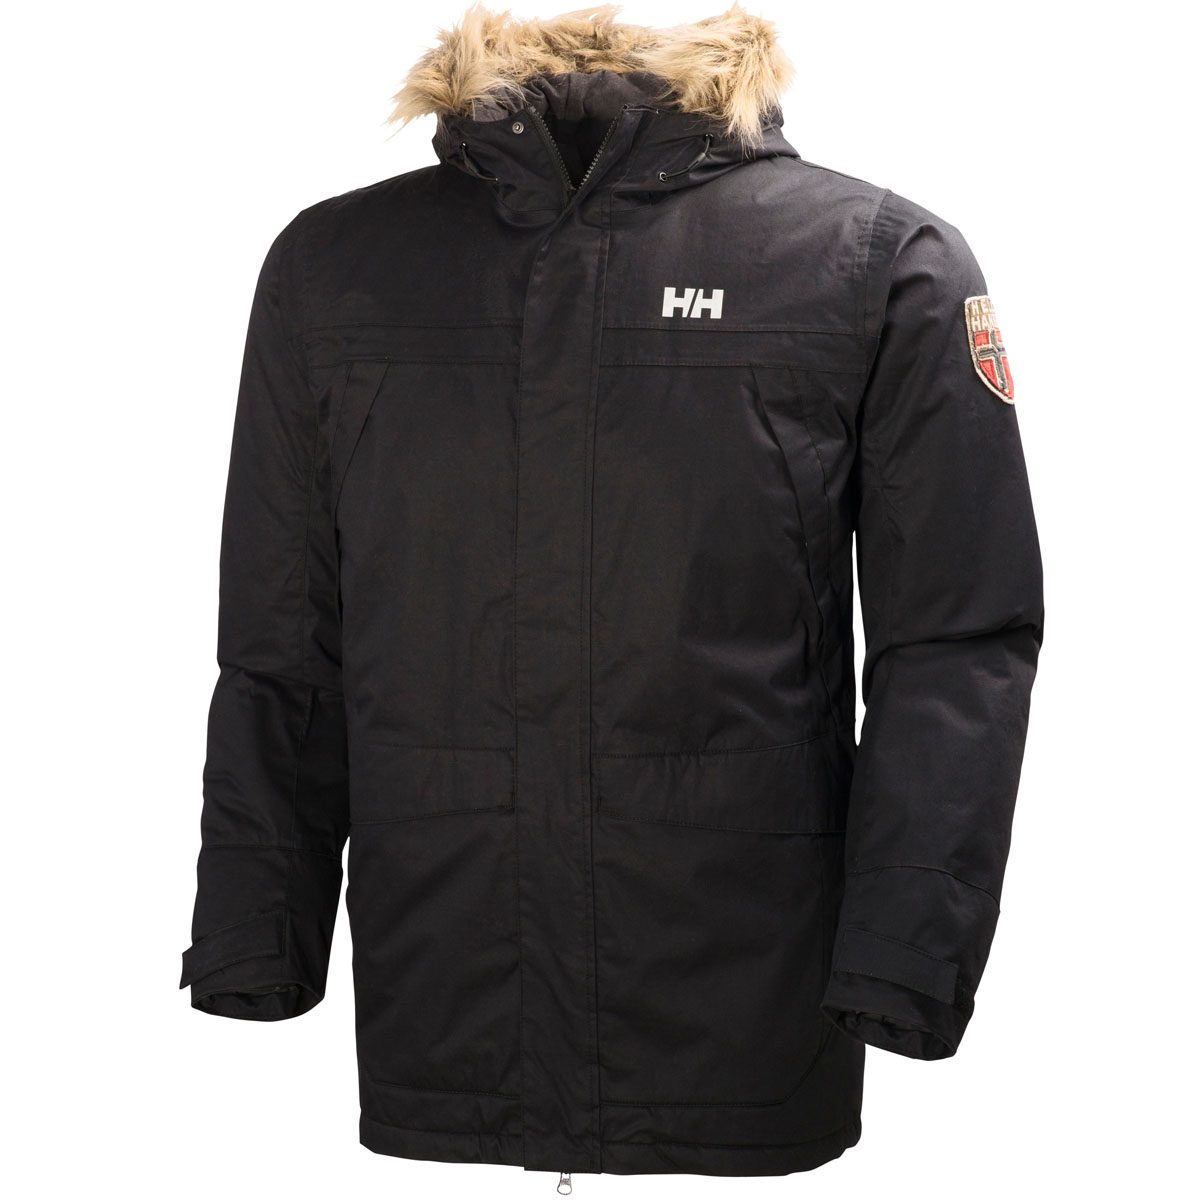 34 off rrp helly hansen mens coastline parka insulated jacket winter coat ebay. Black Bedroom Furniture Sets. Home Design Ideas